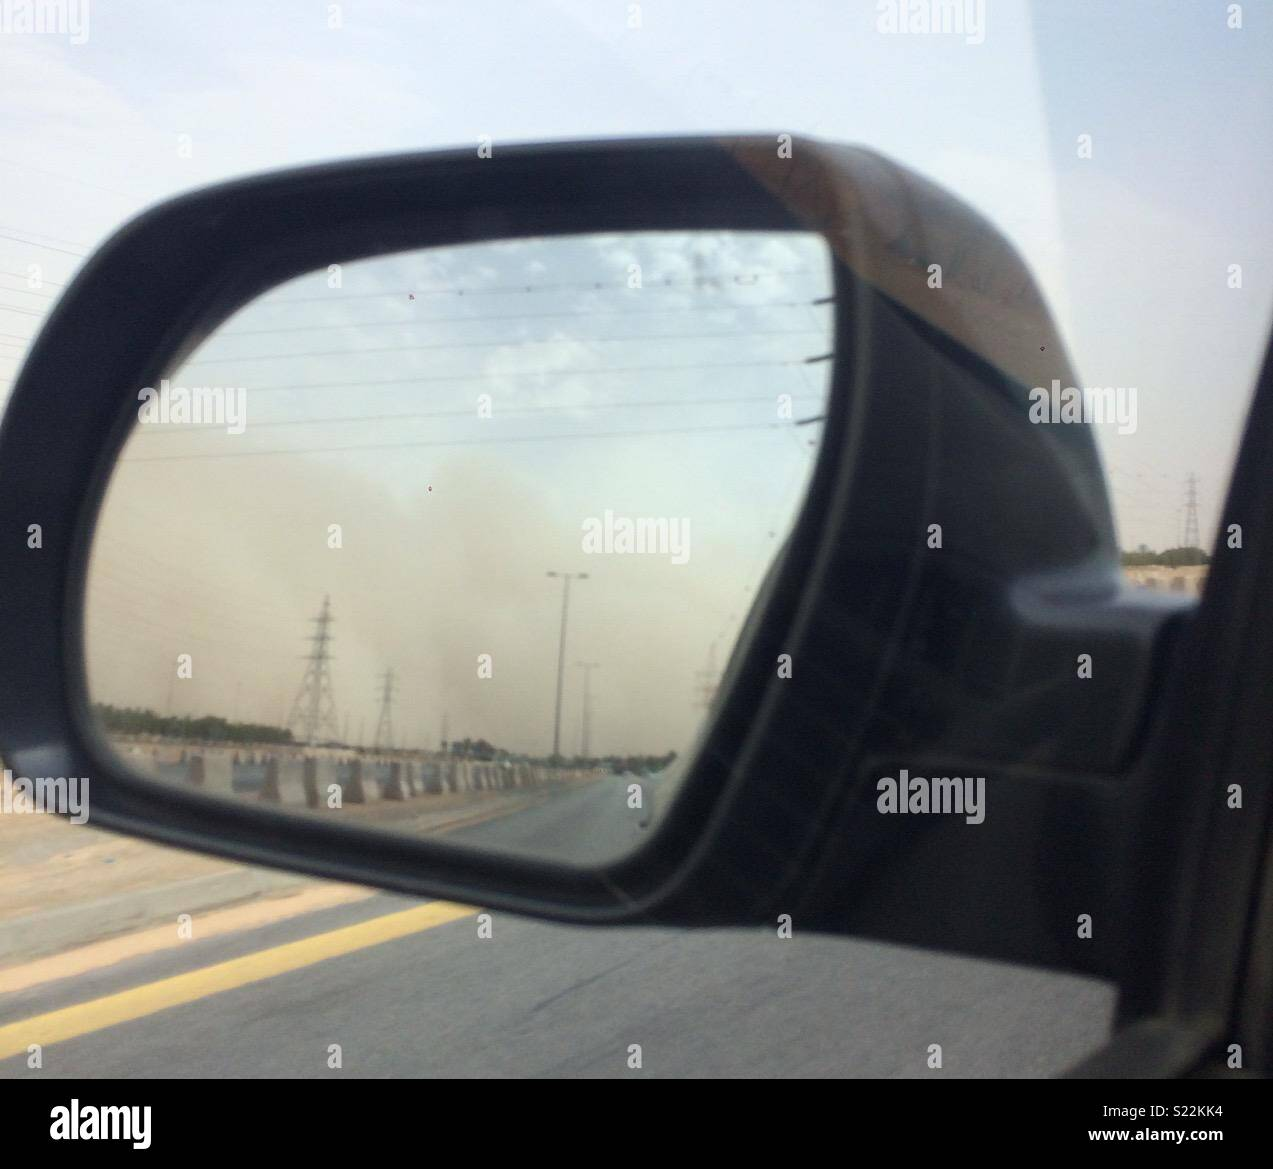 Sandstorm following me down the road - Stock Image